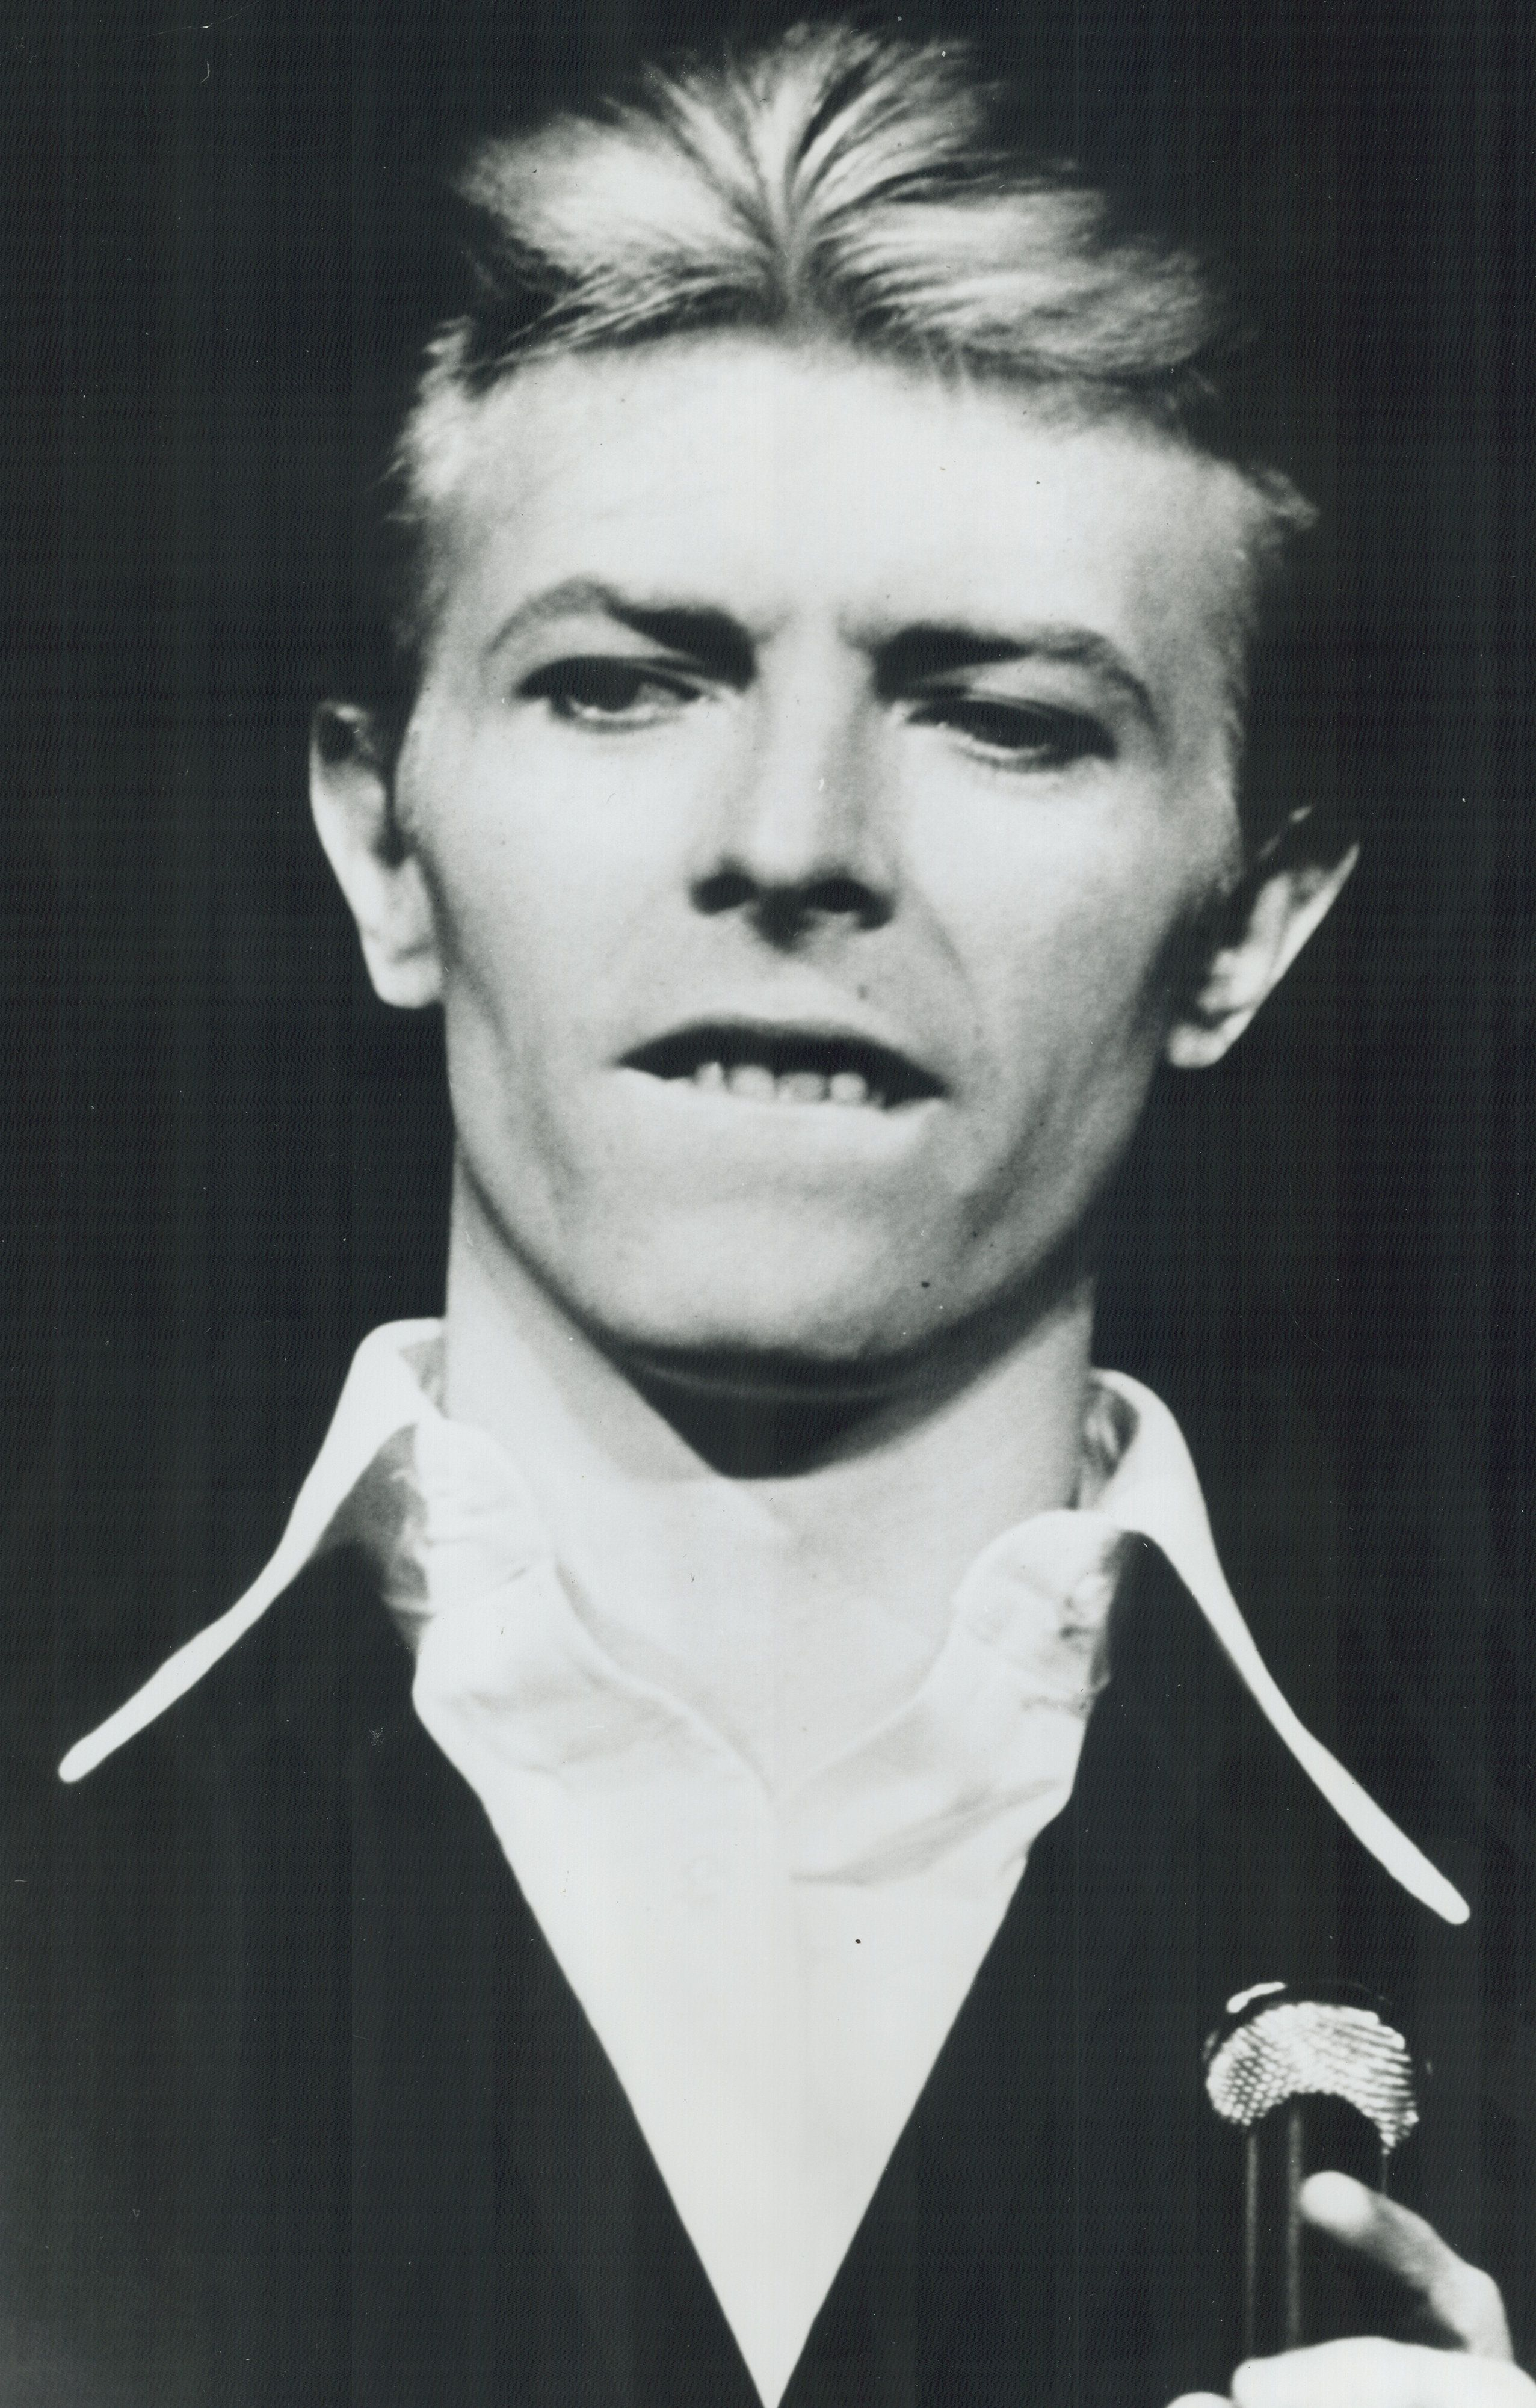 CANADA - CIRCA 1900: David Bowie (Photo by Bob Olsen/Toronto Star via Getty Images)